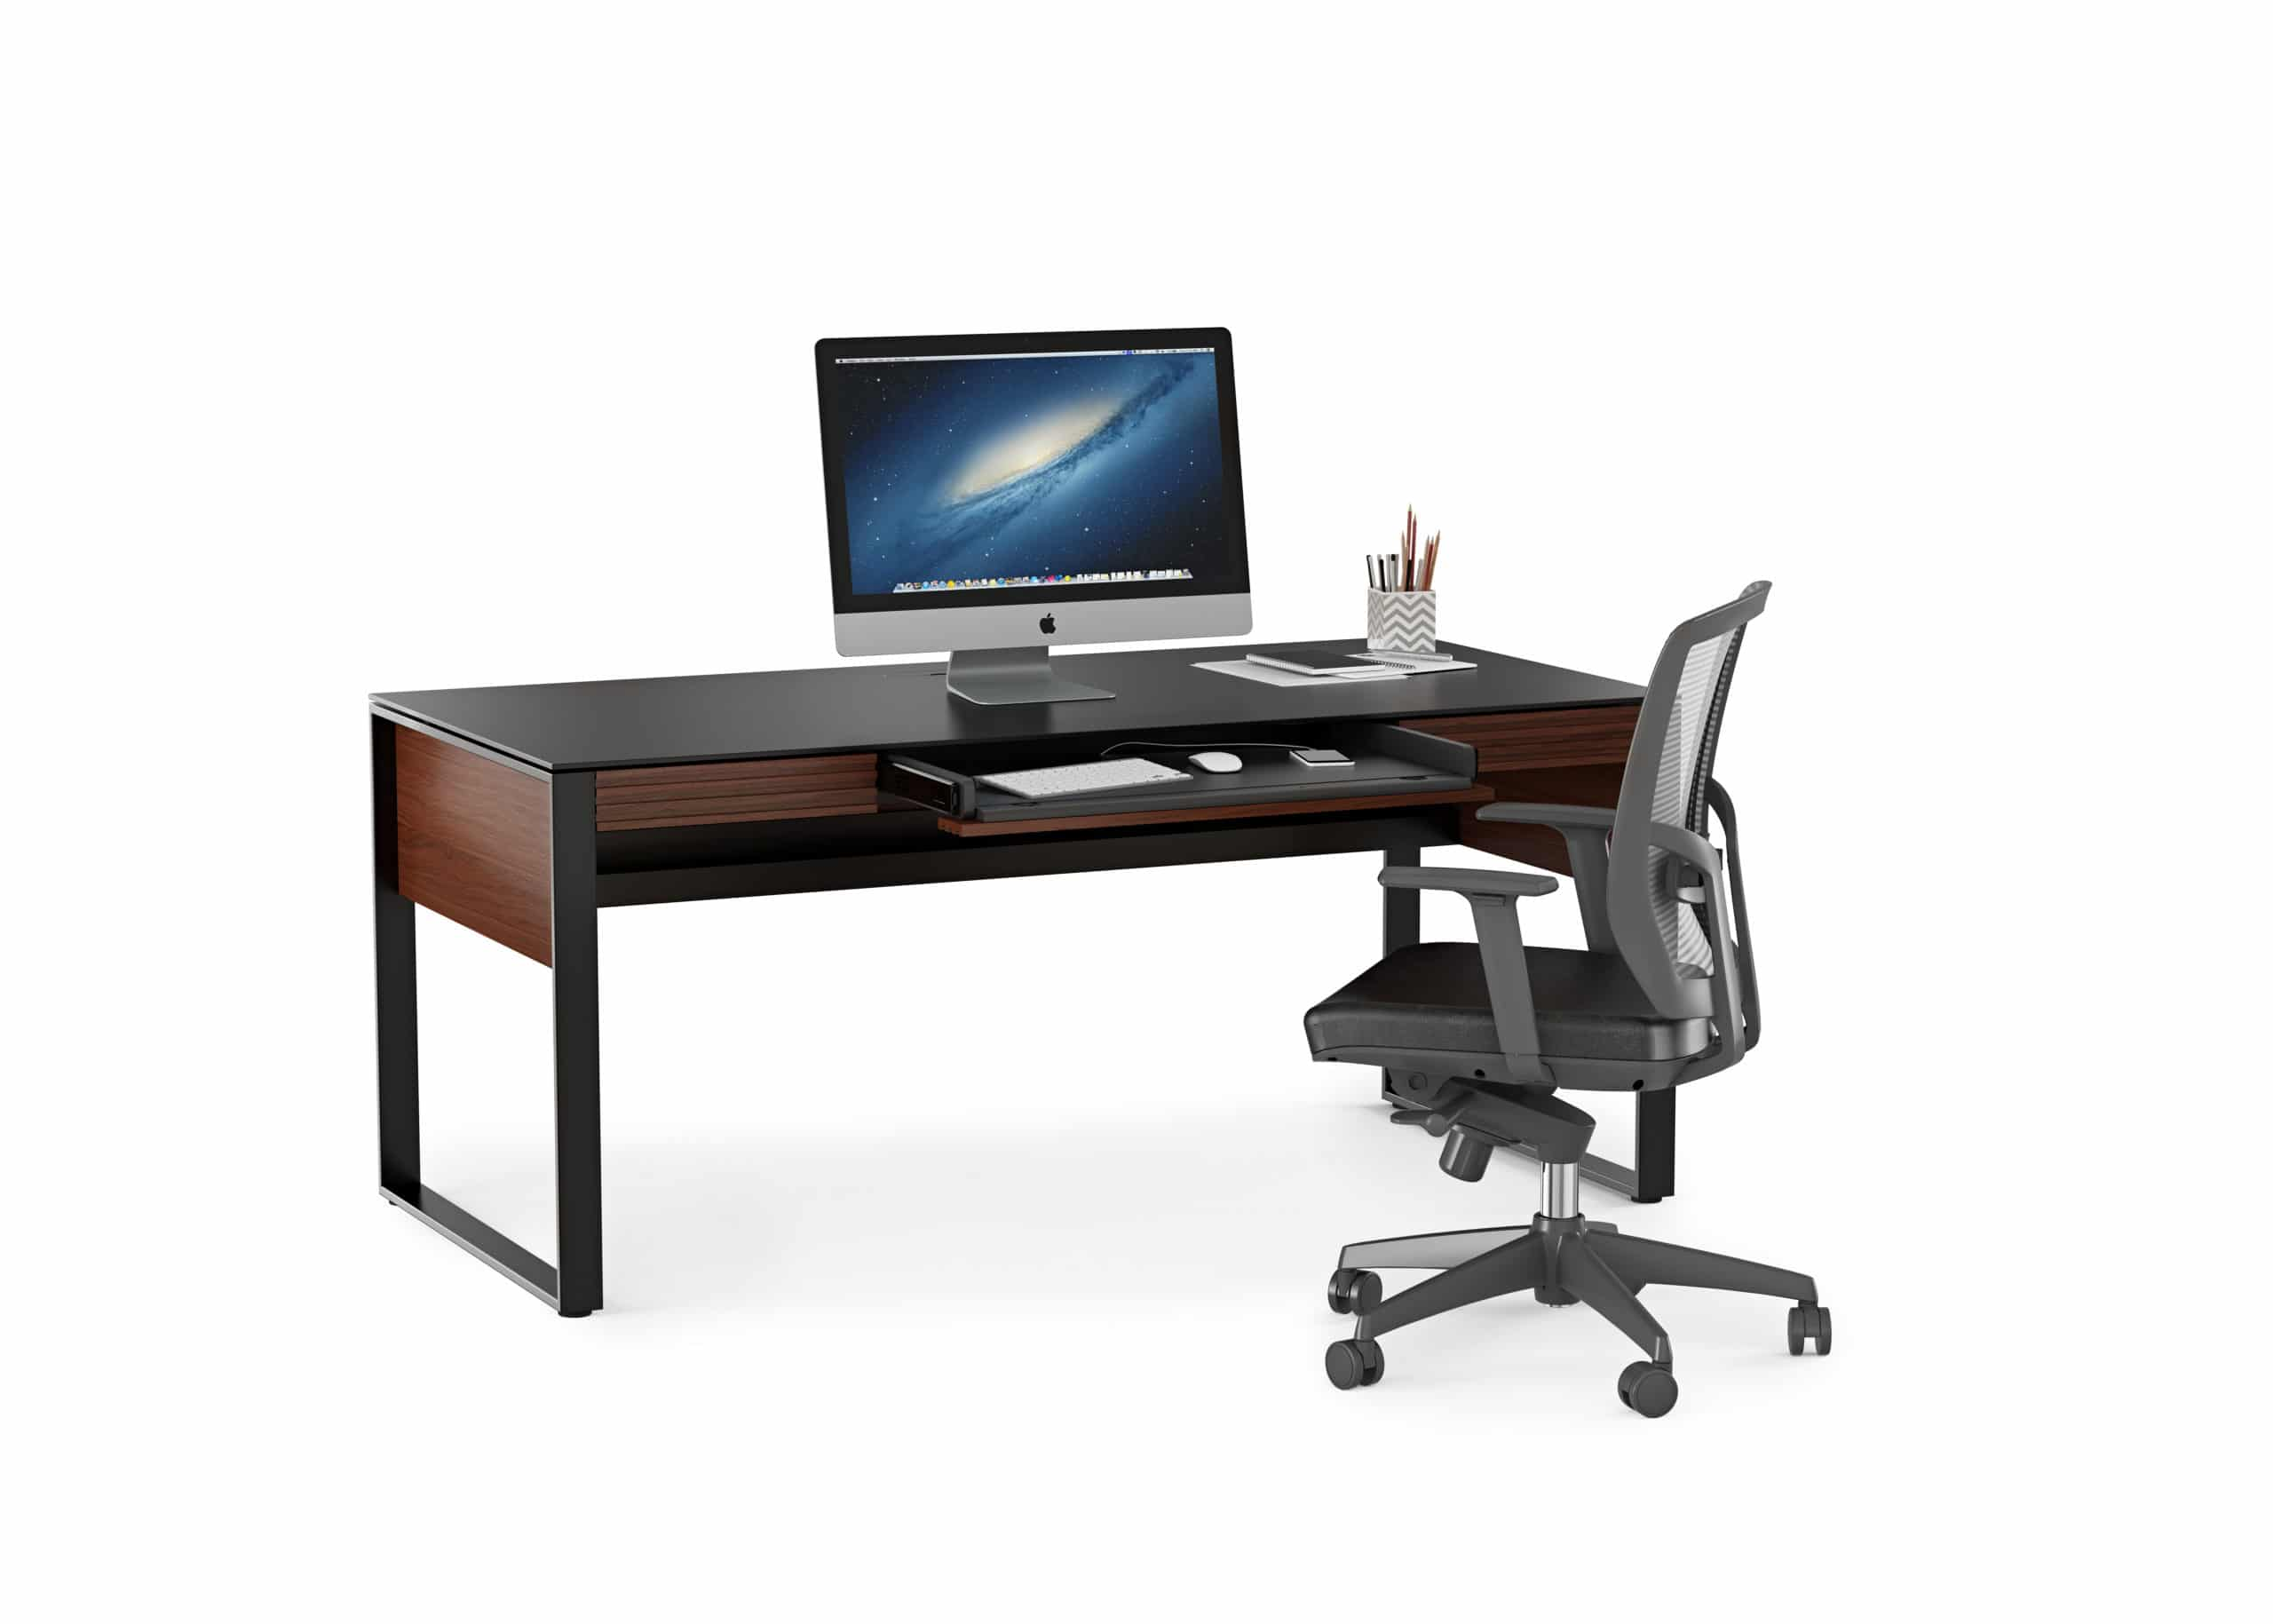 Corridor 6521 Modern Executive Office Desk | BDI Furniture